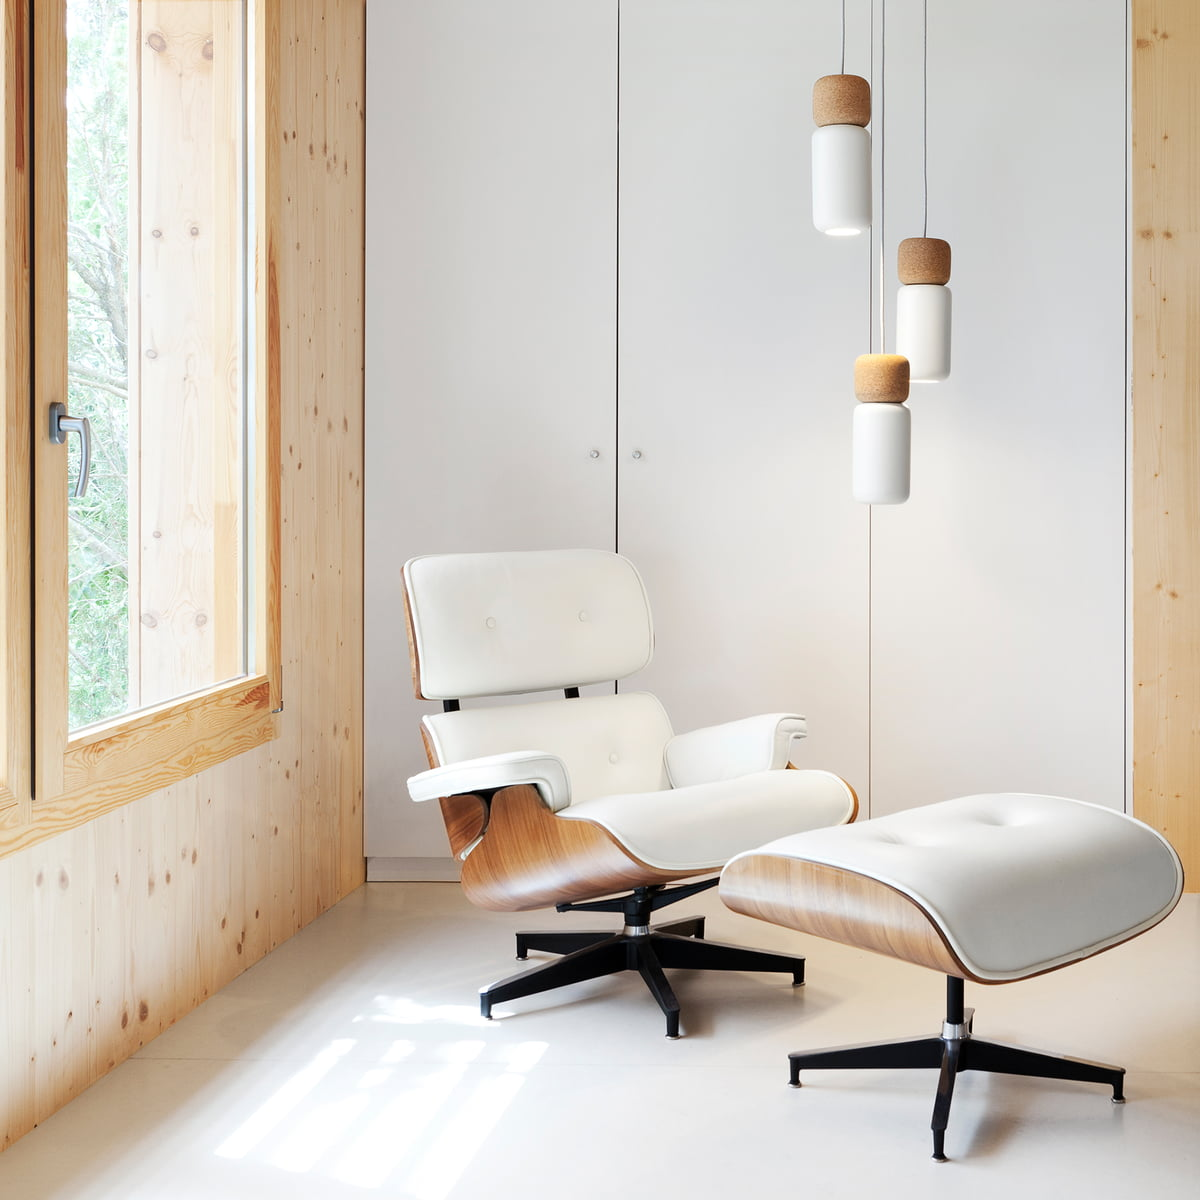 Captivating Pila Pendant Lamp With Lounge Chair U0026 Ottoman